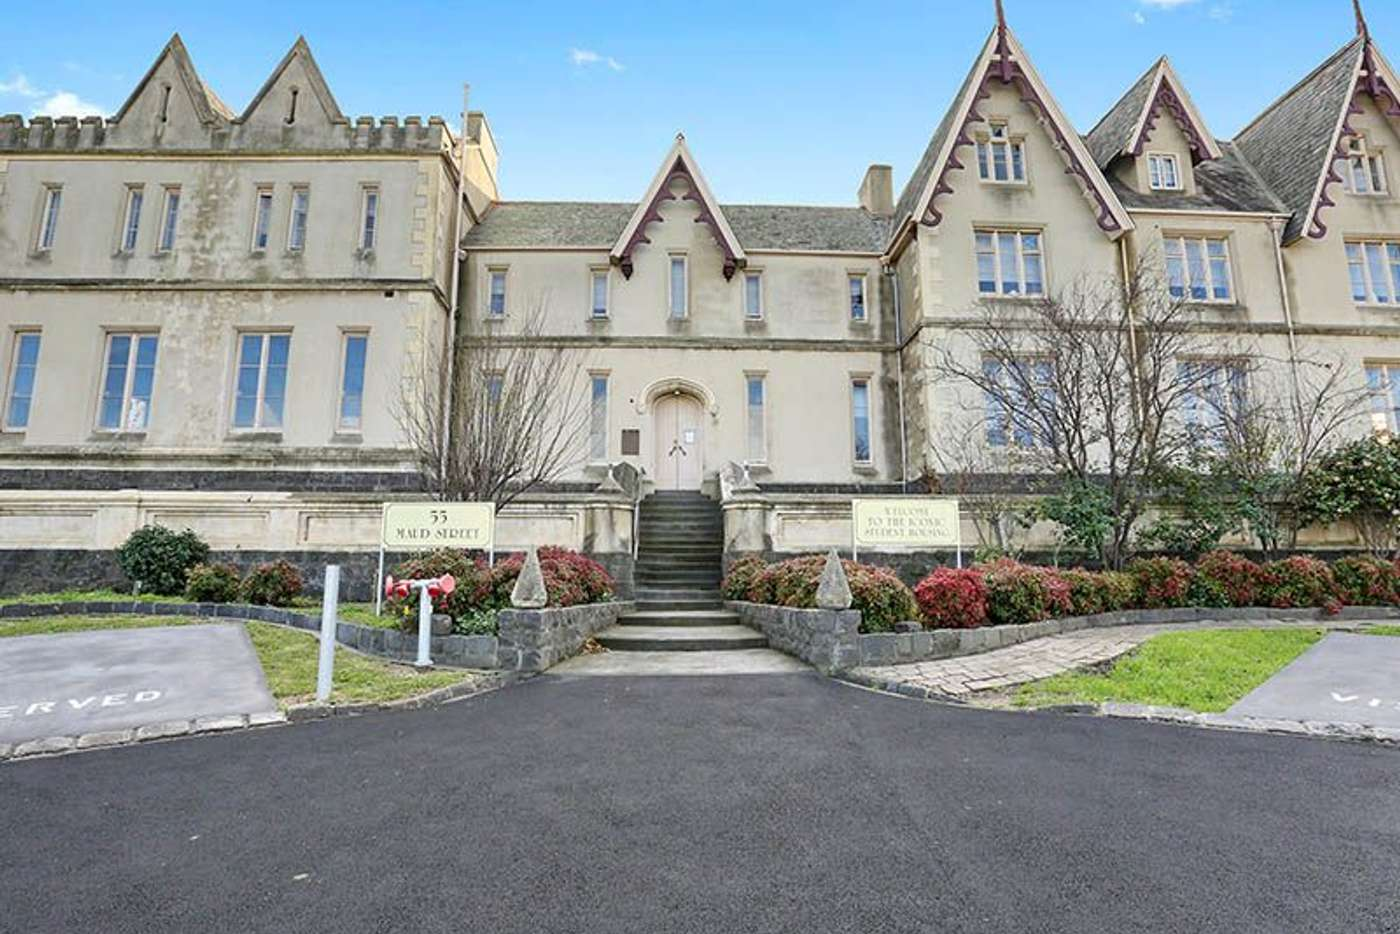 Main view of Homely apartment listing, 55 Maud Street, Geelong VIC 3220